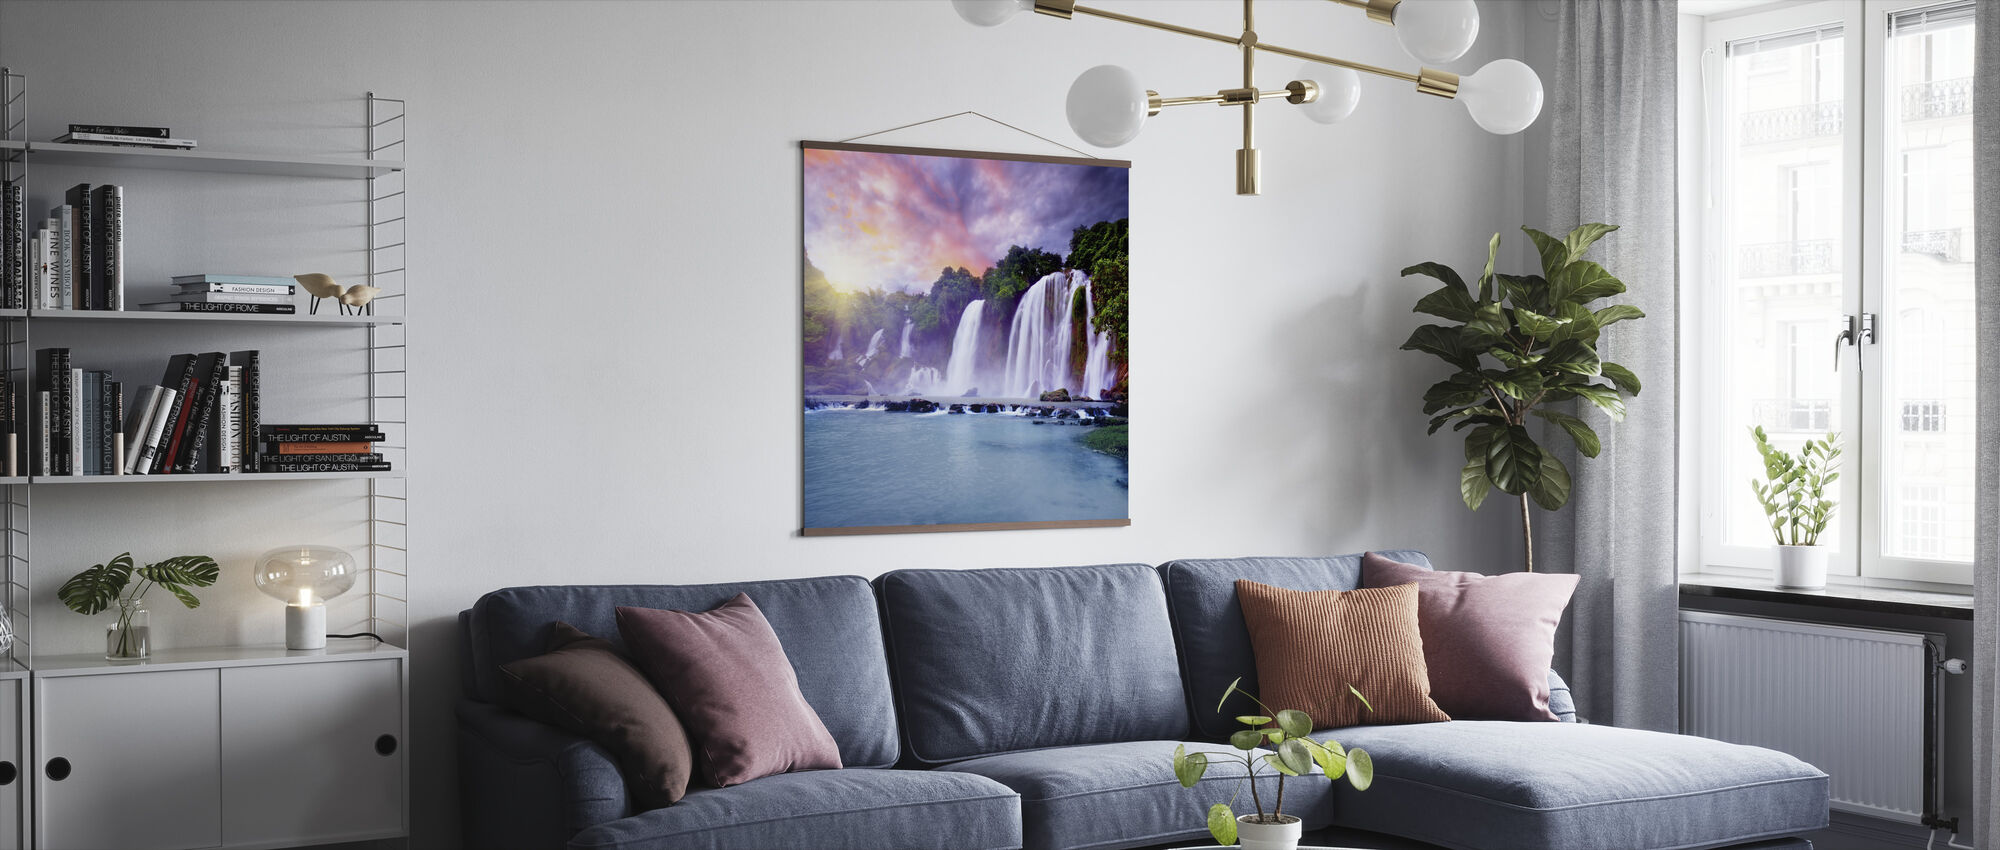 Banyue Waterfall - Poster - Living Room